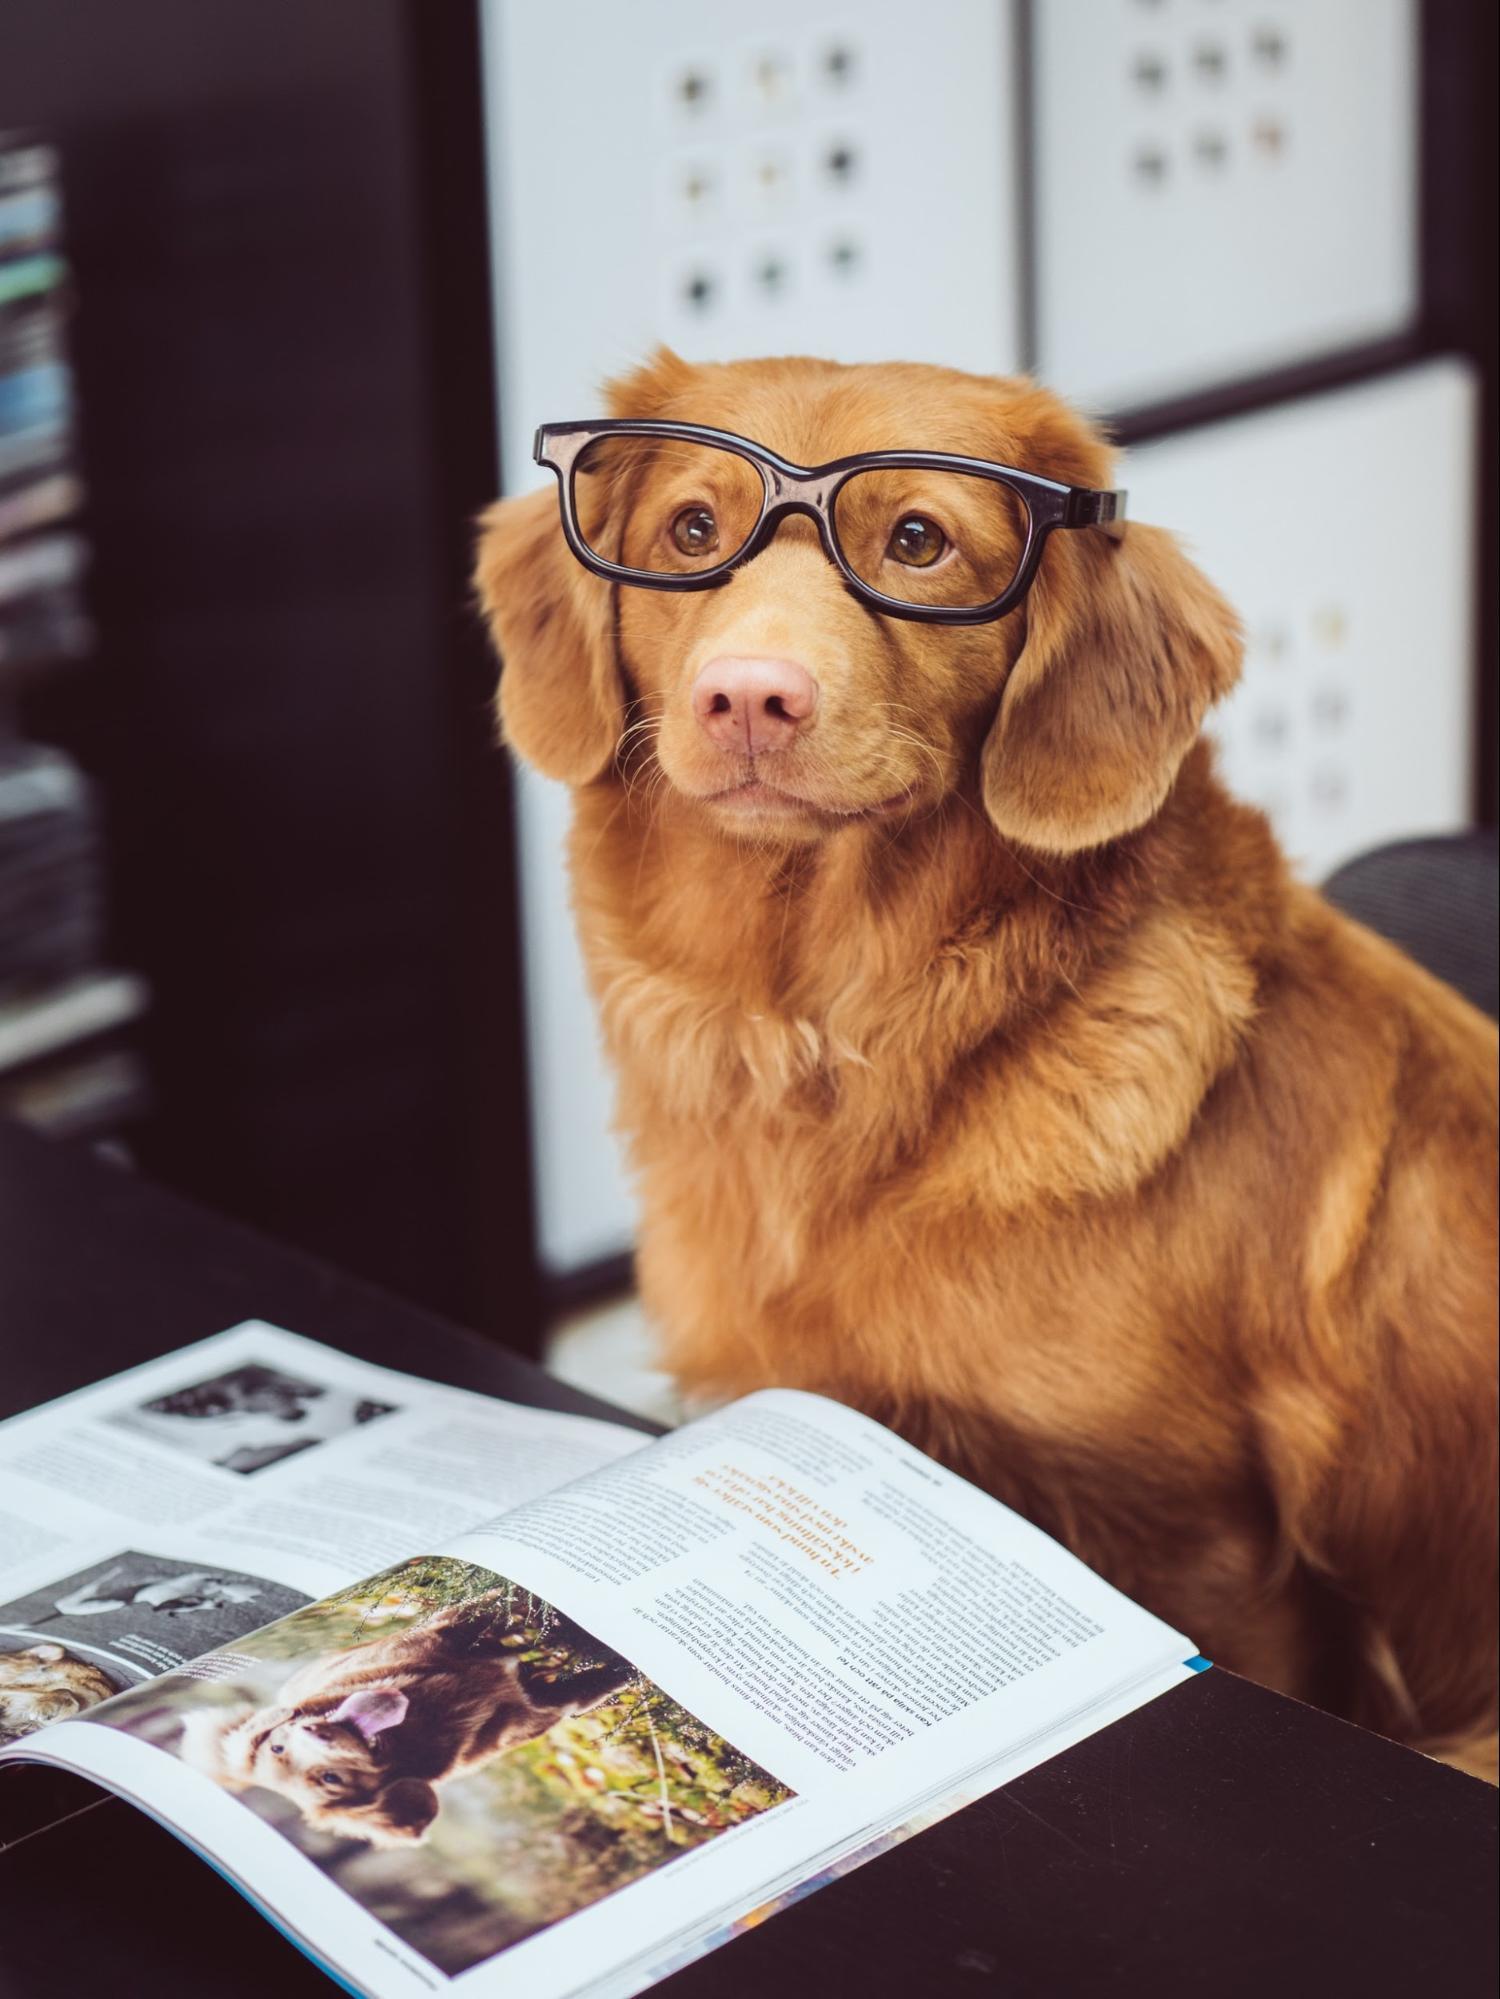 Dog with glasses and reading a magazine